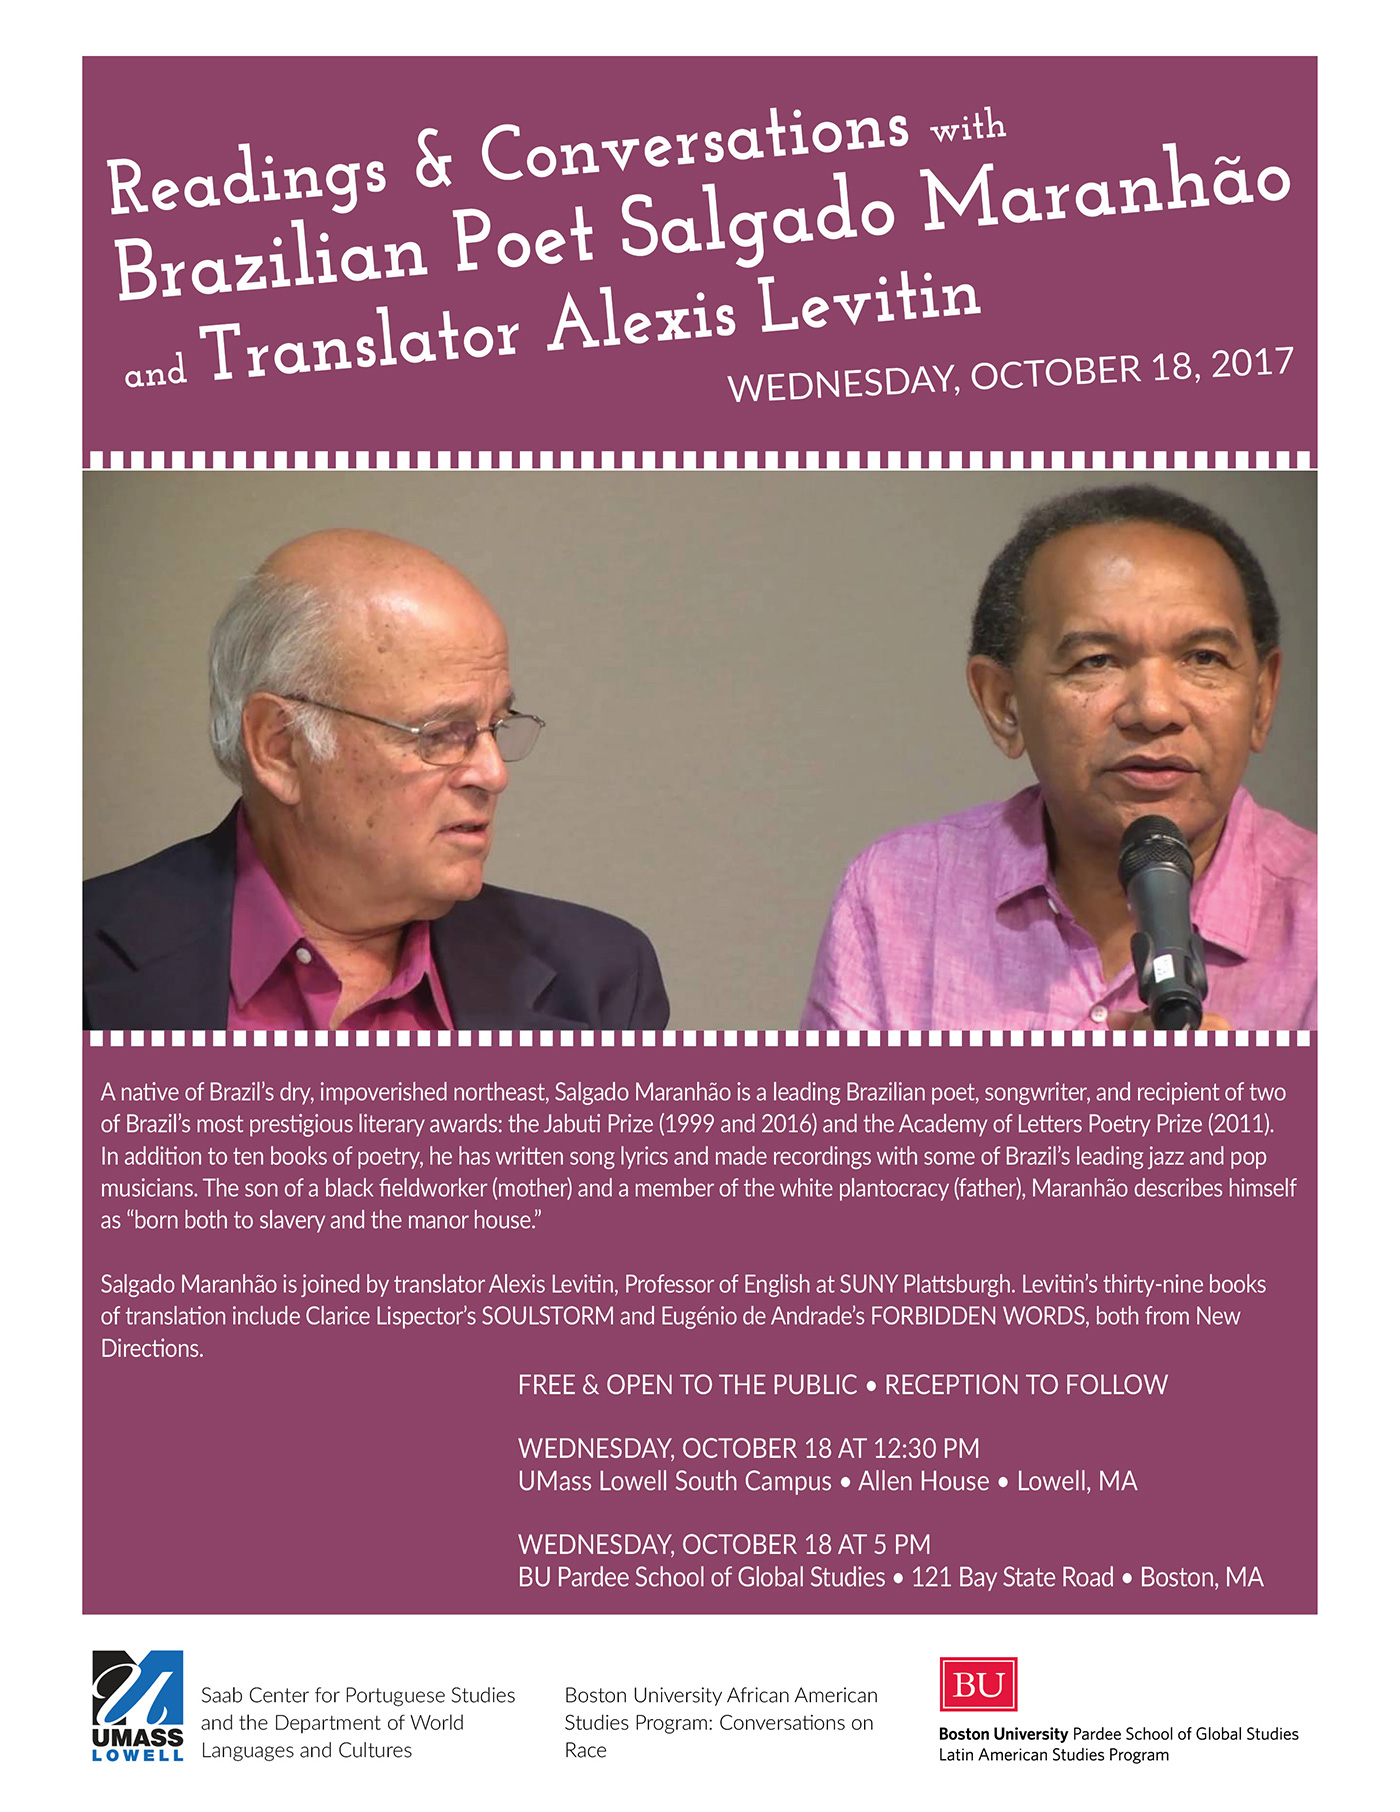 Flyer for event: Reading & Conversations with Brazilian Poet Salgado Maranhão and Translator Alexis Levitin. Salgado Maranhão is the best known poet of his generation in Brazil. Alexis Levitin has translated forty books, including Clarice Lispector's Soulstorm and Eugenio de Andrade's Forbidden Words (both from New Directions).